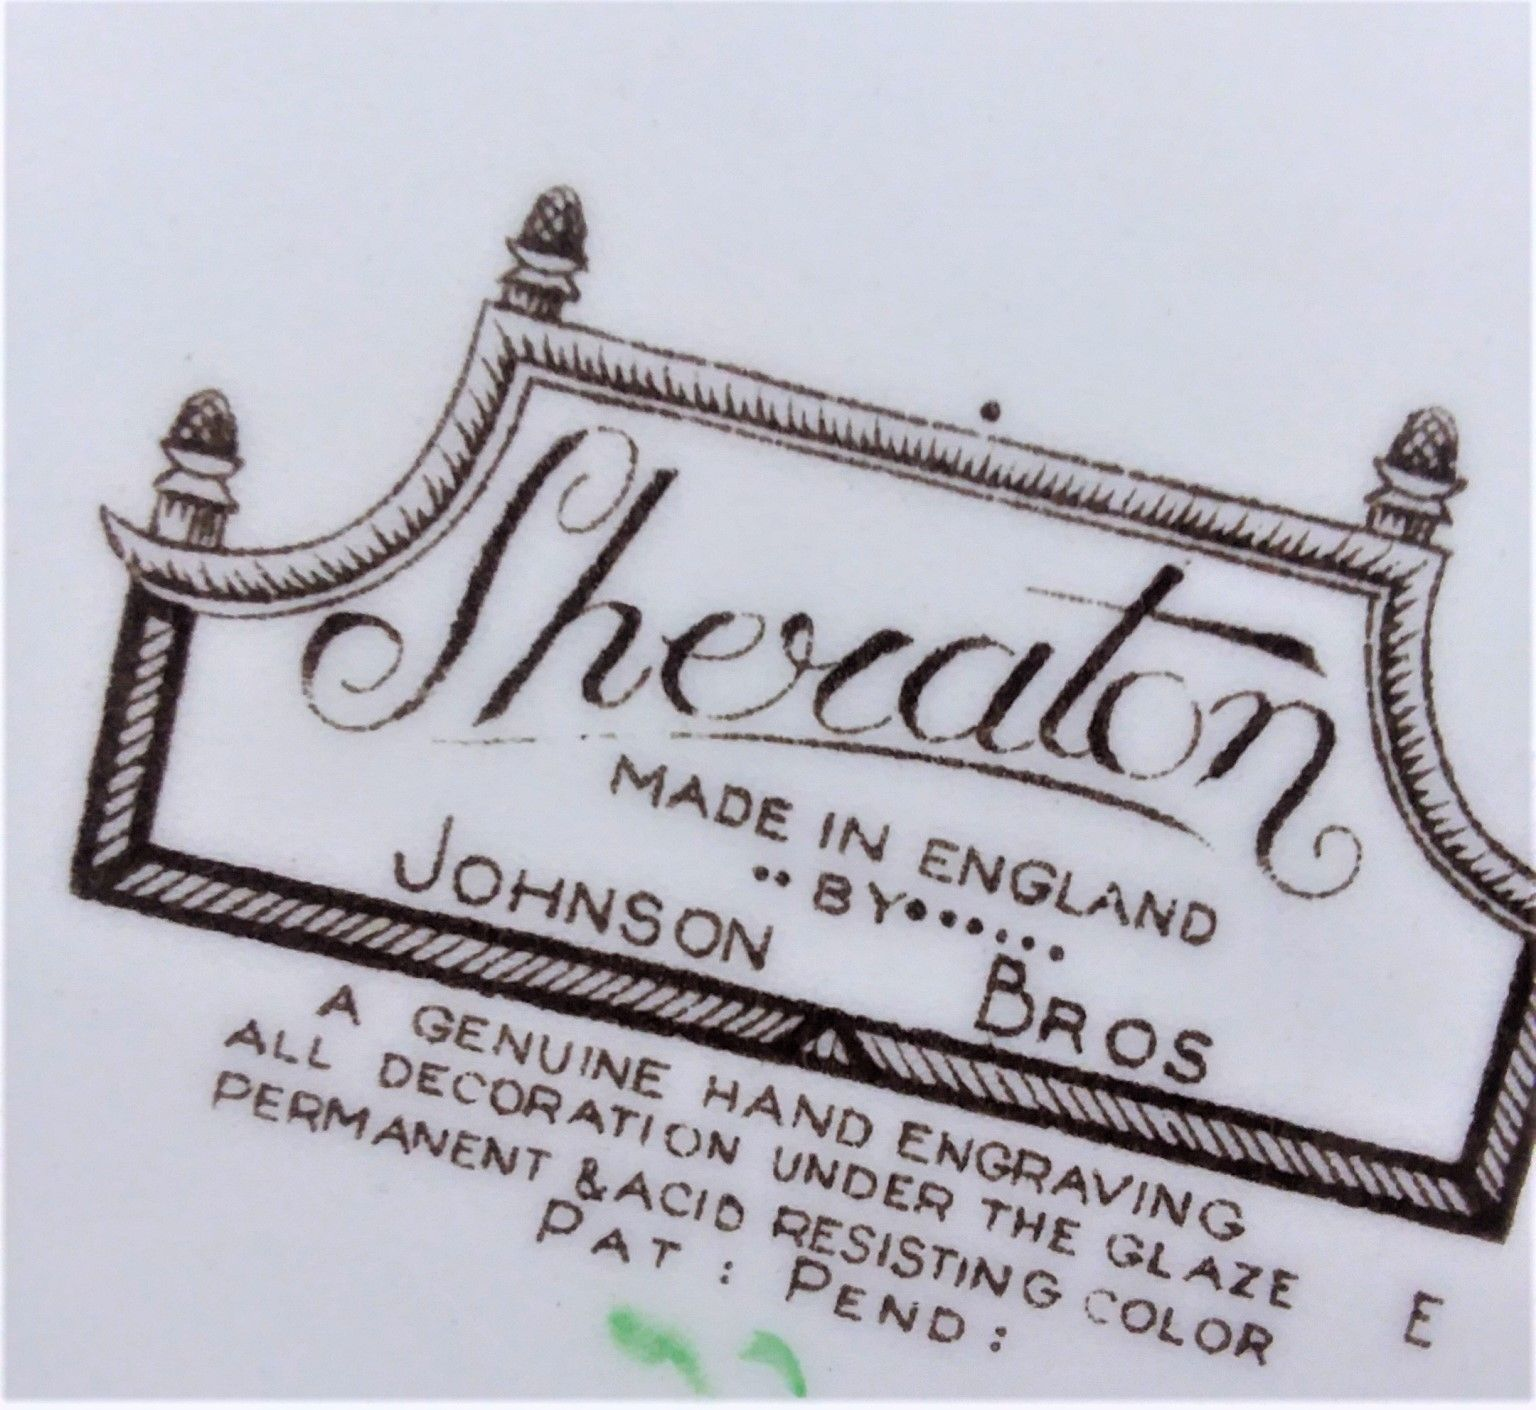 VTG COLLECTIBLE JOHNSON BROTHERS SHERATON SQUARE SALAD PLATE MADE IN ENGLAND image 4